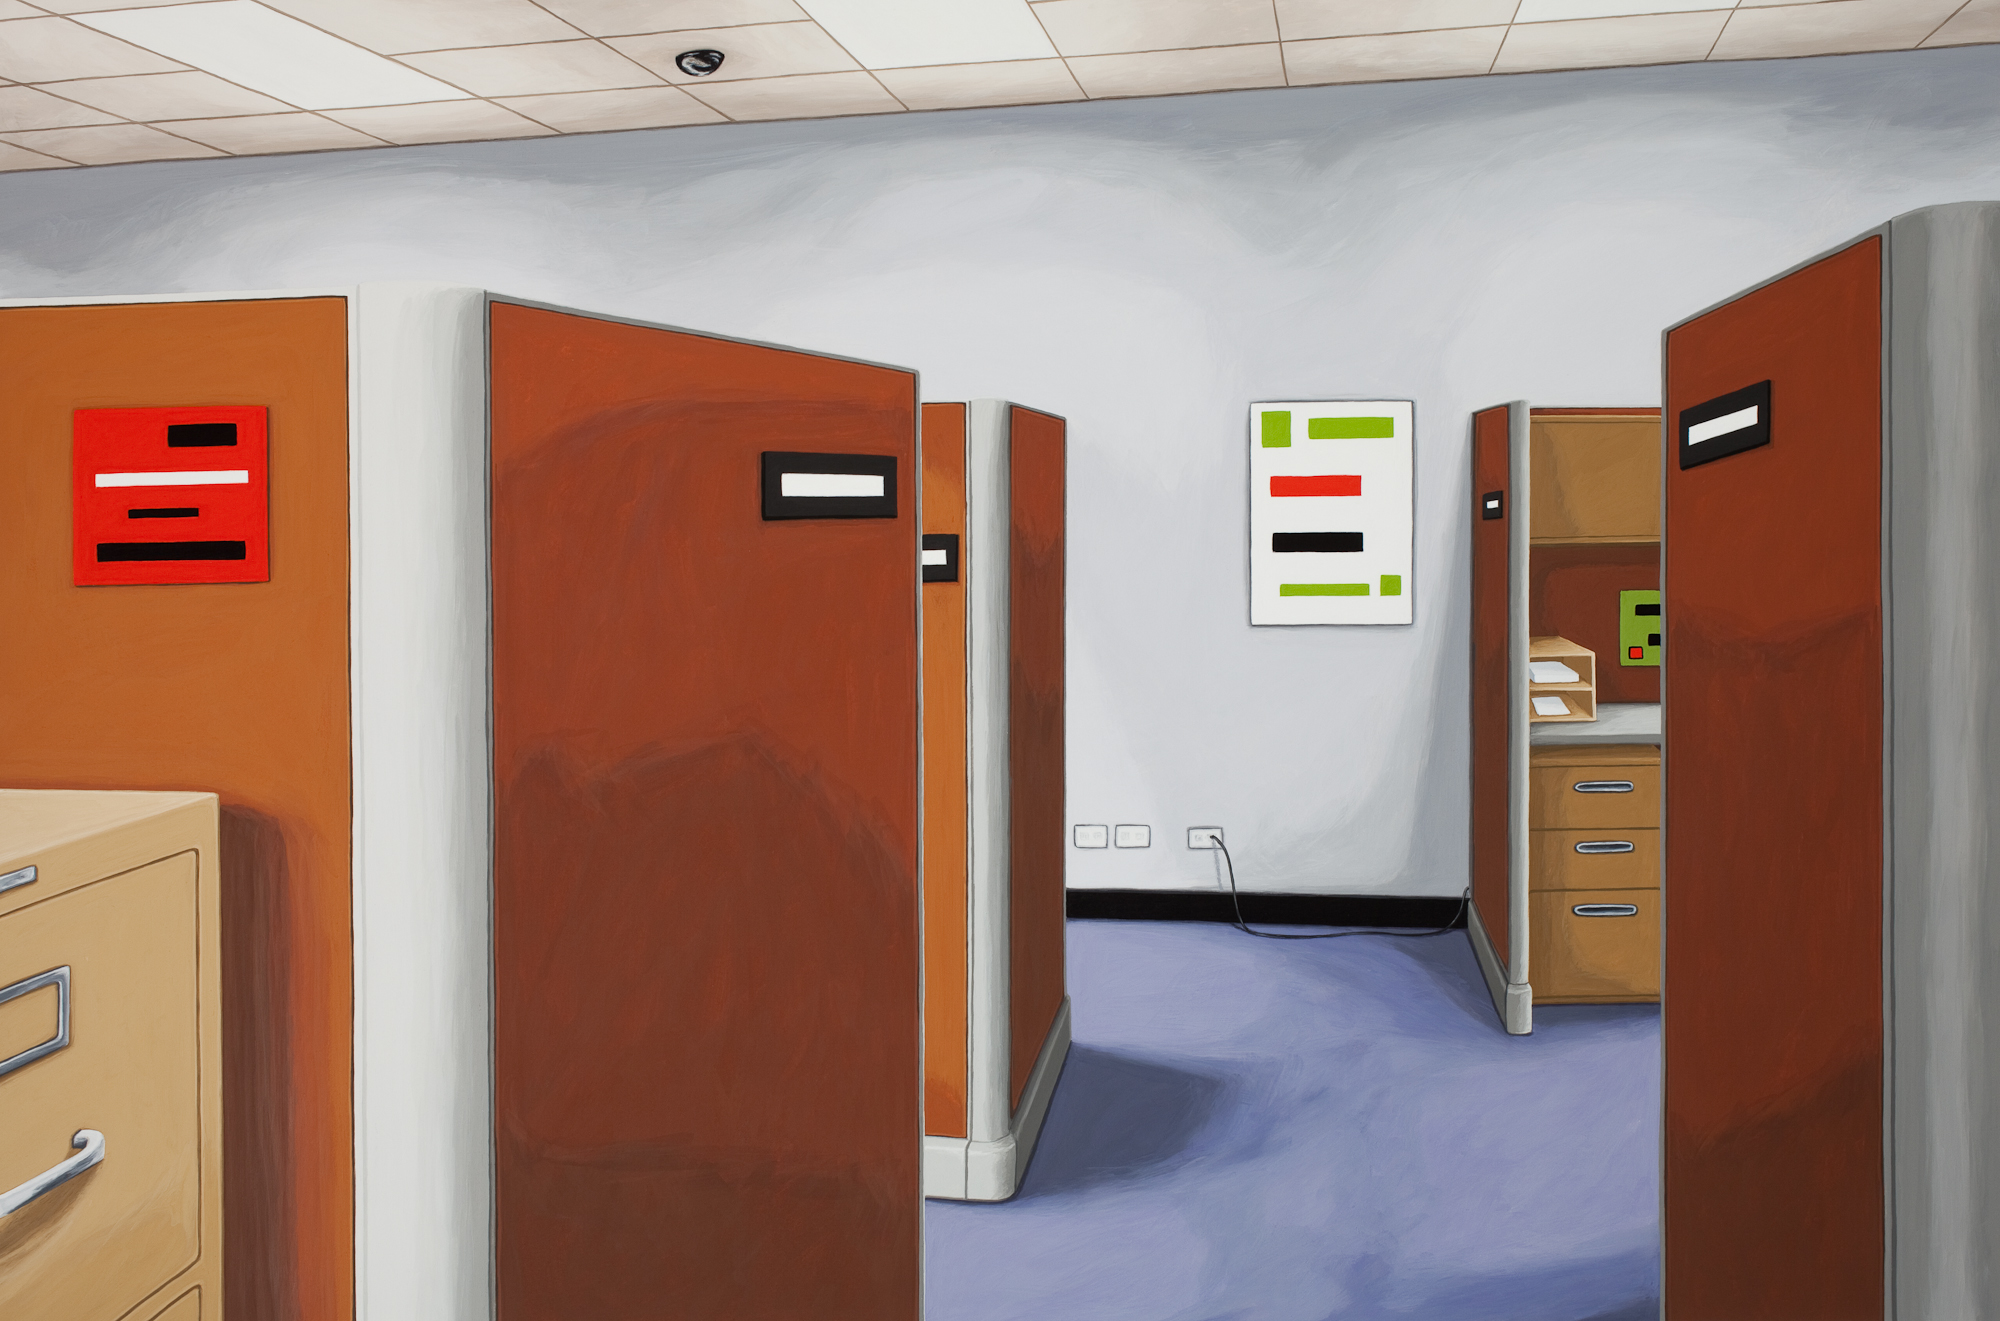 Choose Your Cubicle, 2014, Gouache on Paper, 21 X 30 inches